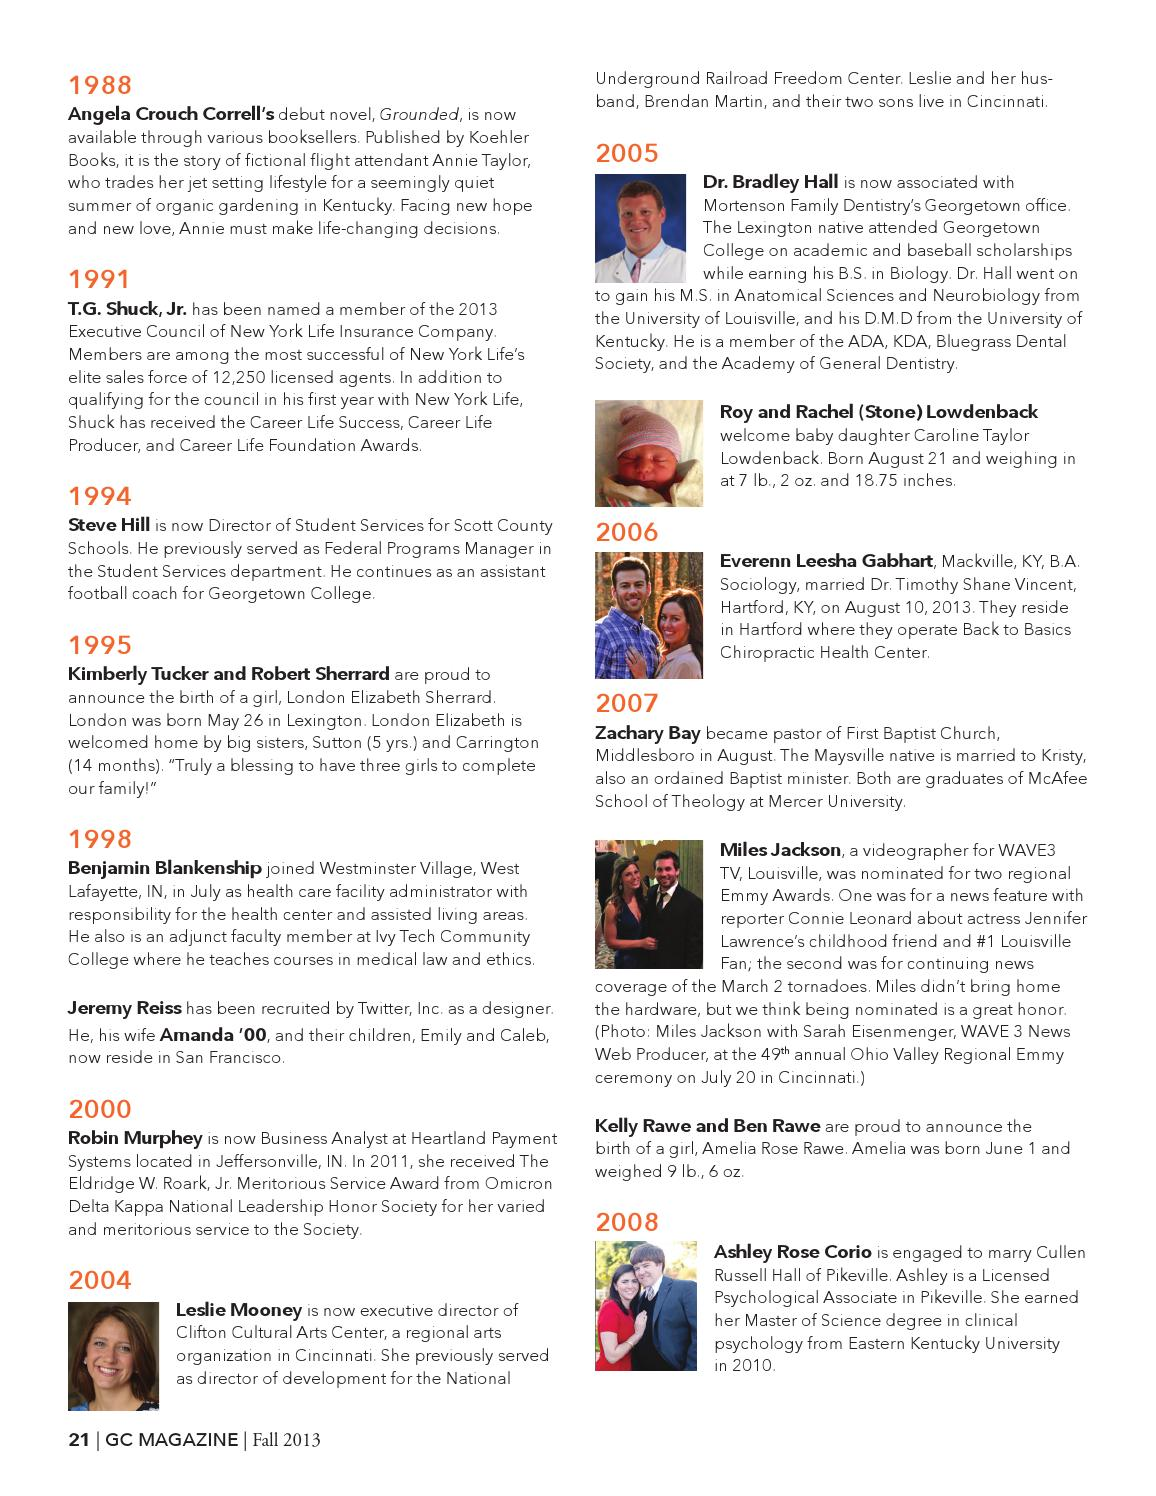 GC Magazine, Fall 2013 by Georgetown College - issuu